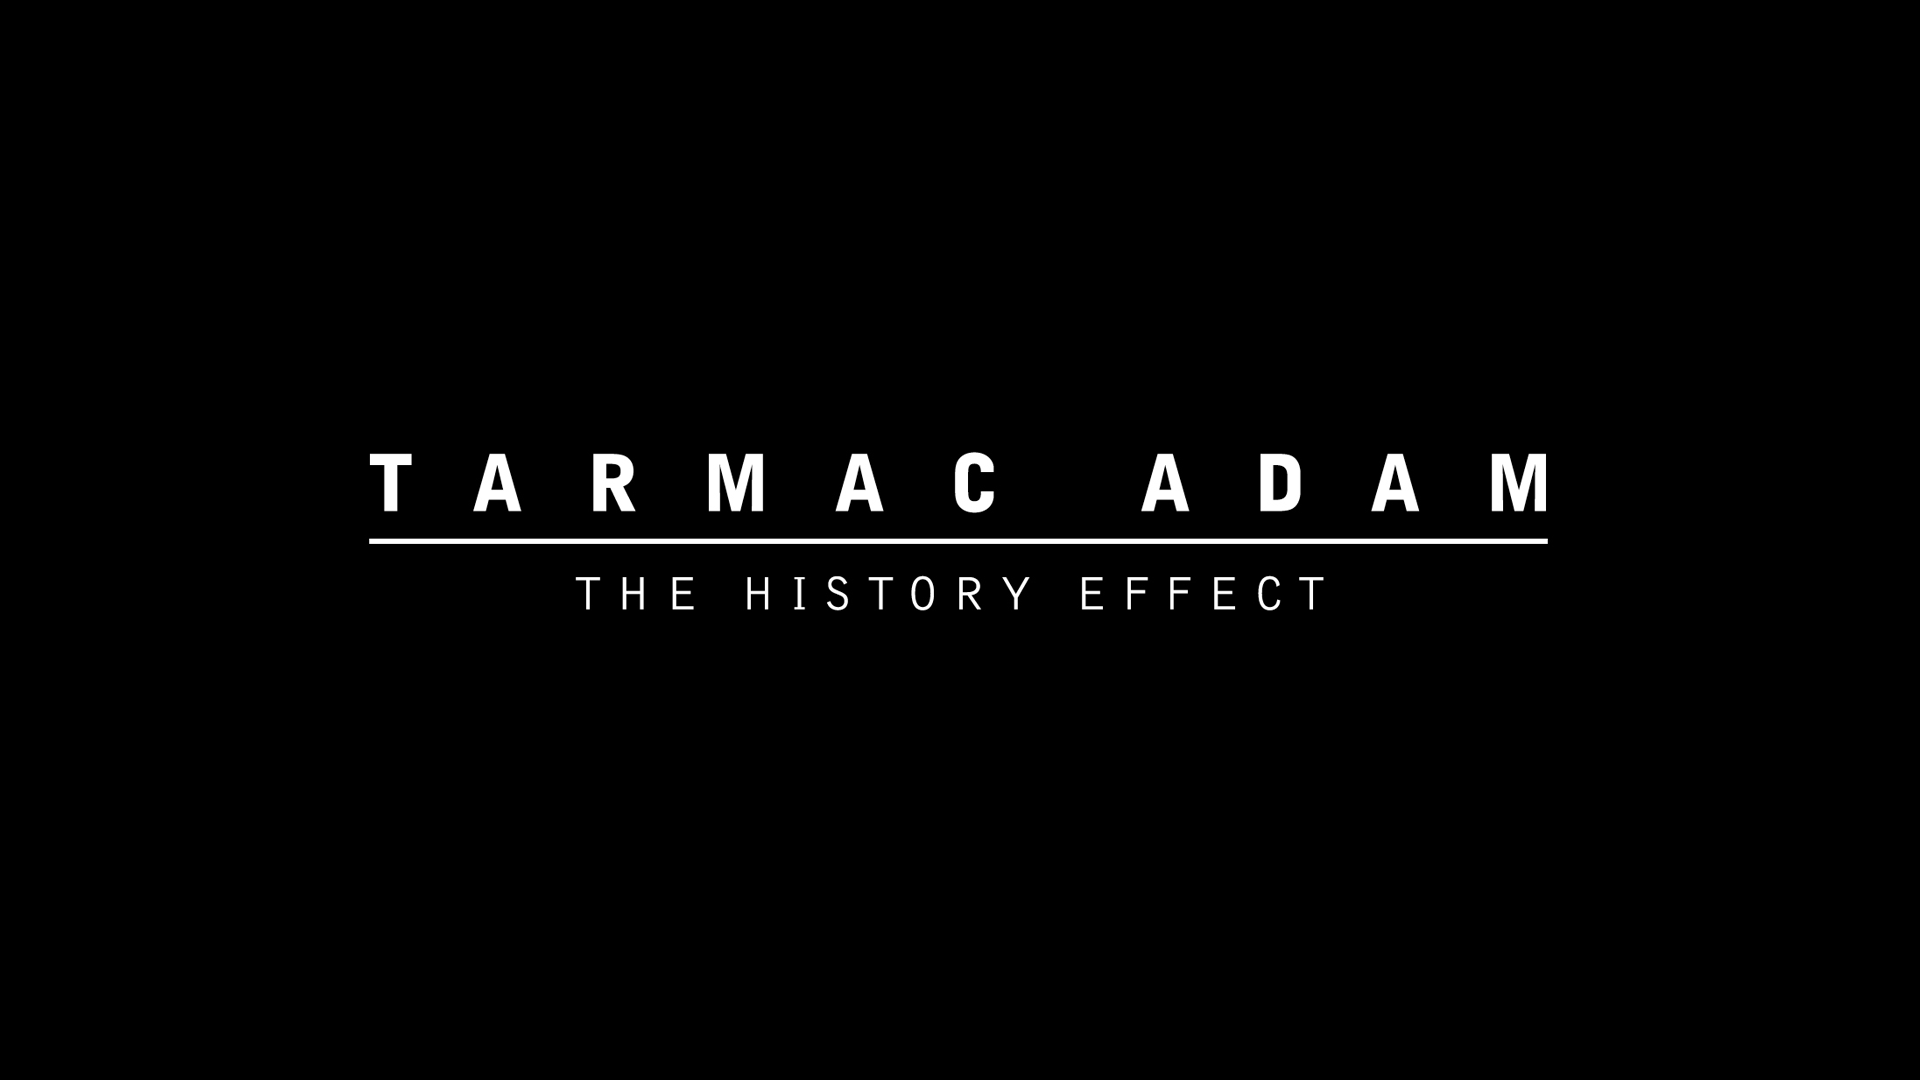 Tarmac Adam - The History Effect